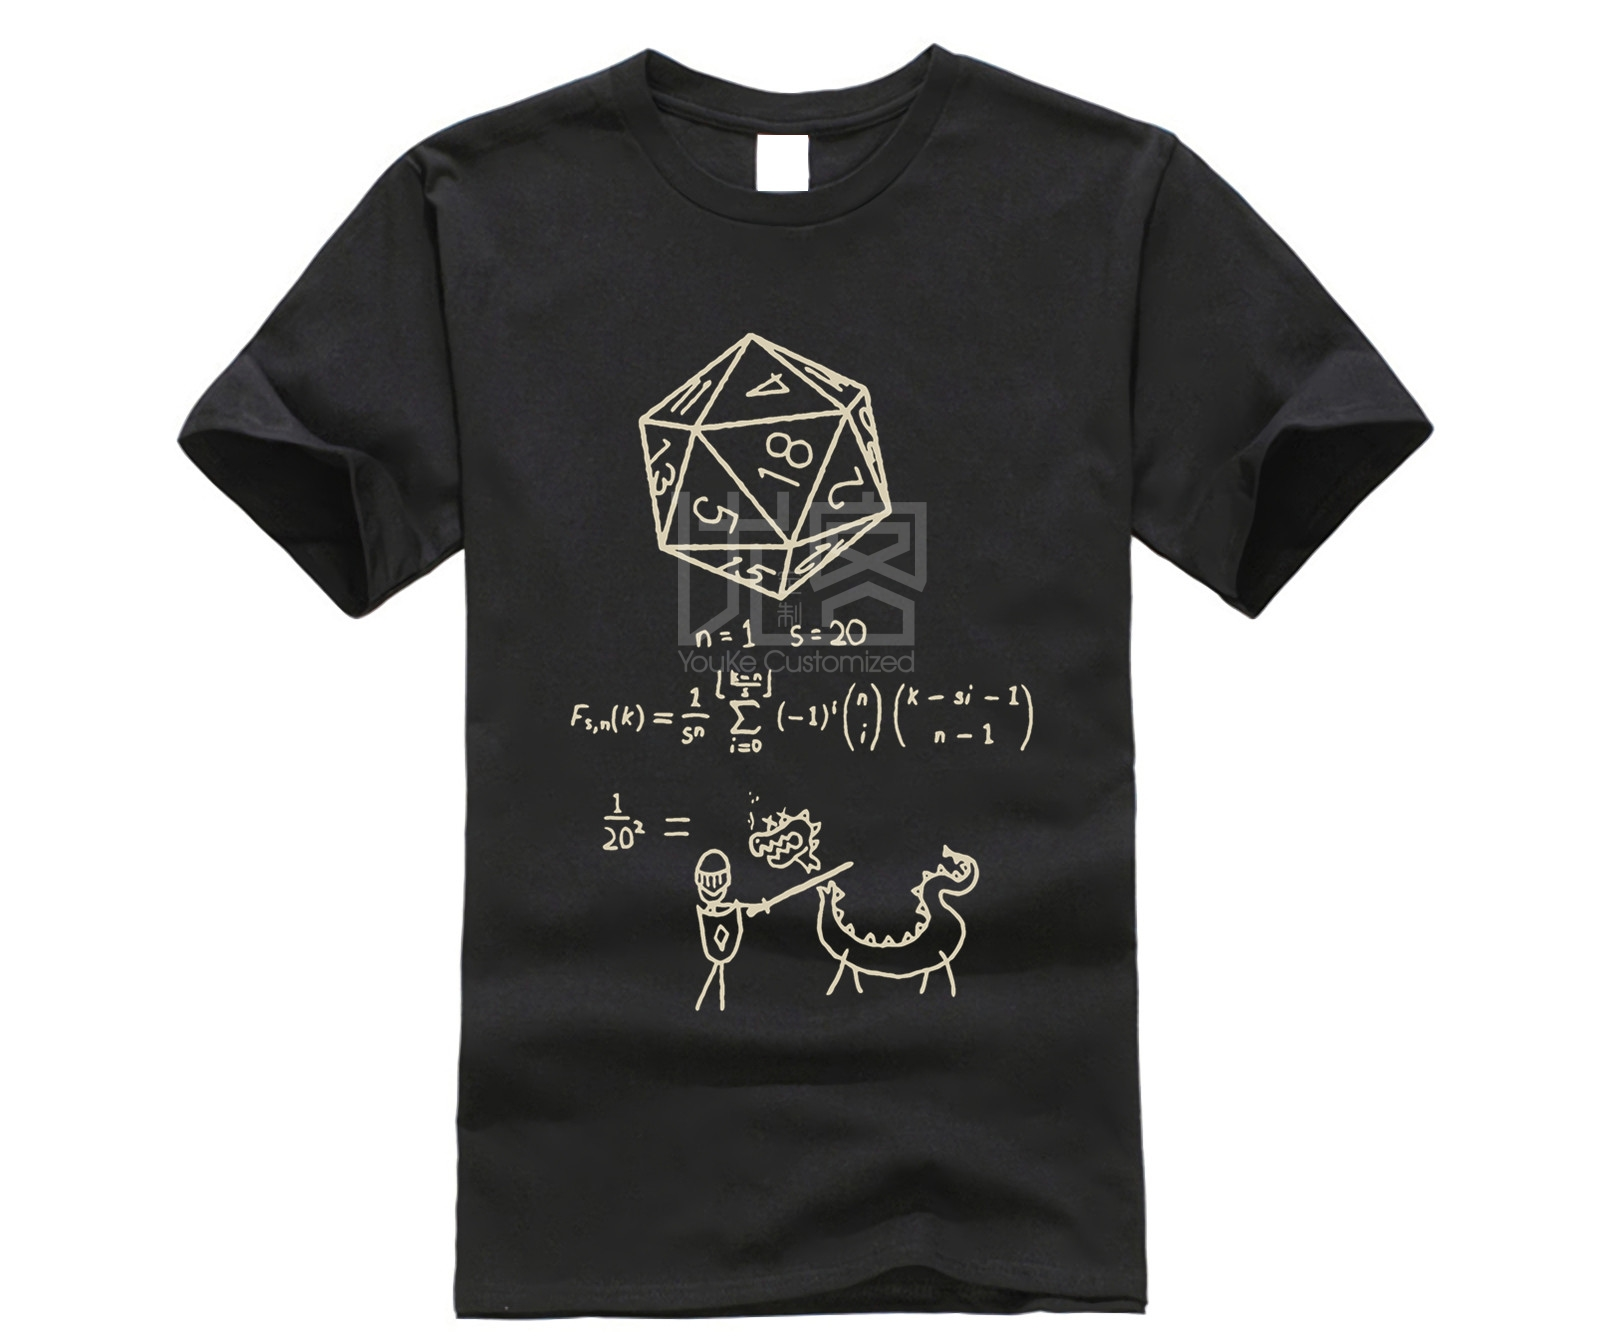 The Science Of 20 Sided Dice T Shirt Men D20 Math DnD Dungeons And Dragons Clothes Popular T-Shirt Crewneck 100% Cotton Tees